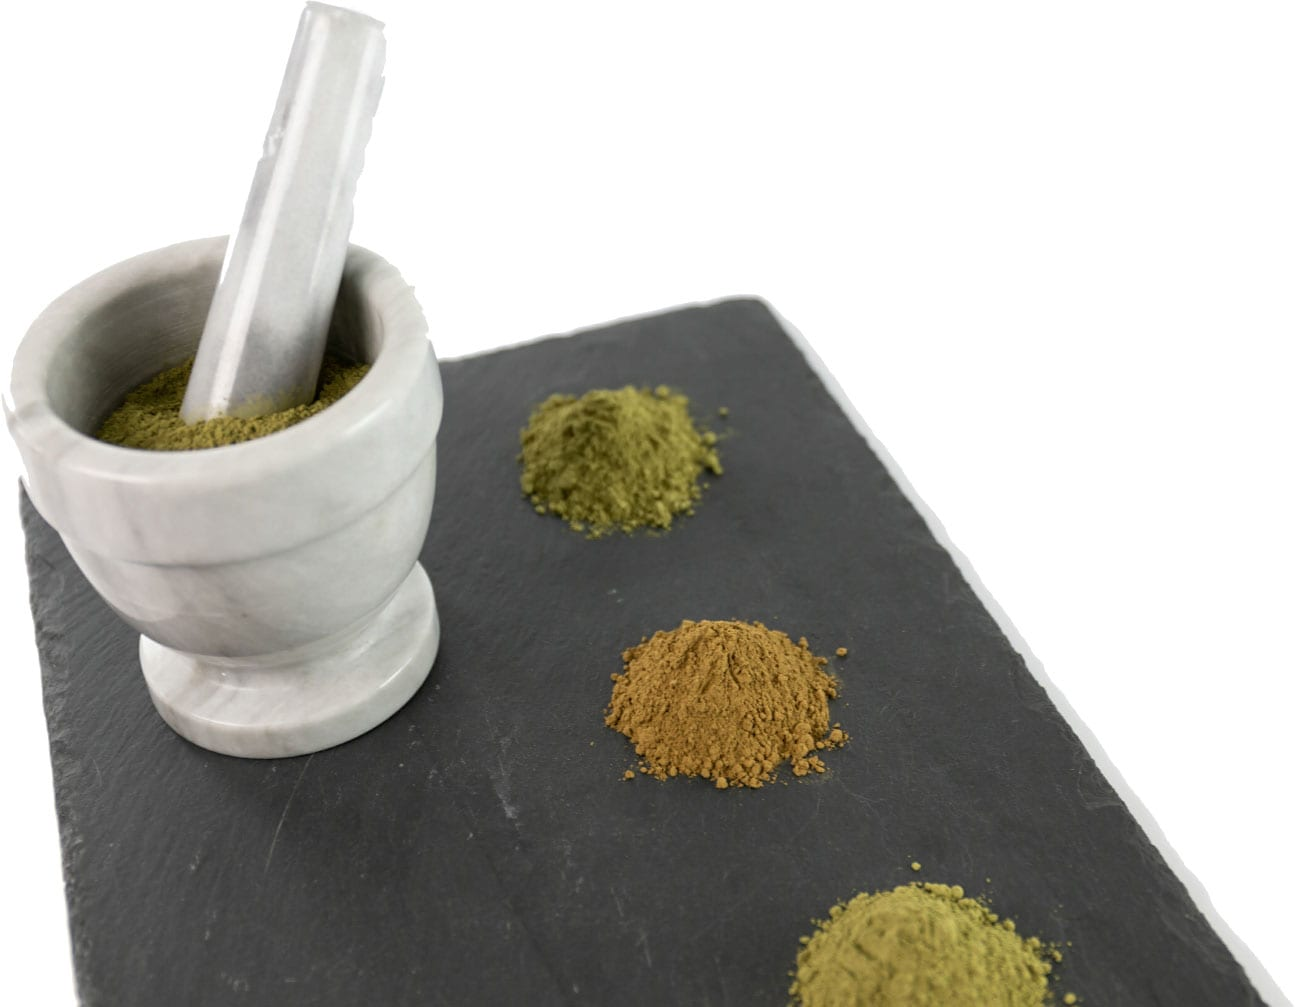 Kratom Powder with Mortar and Pestle